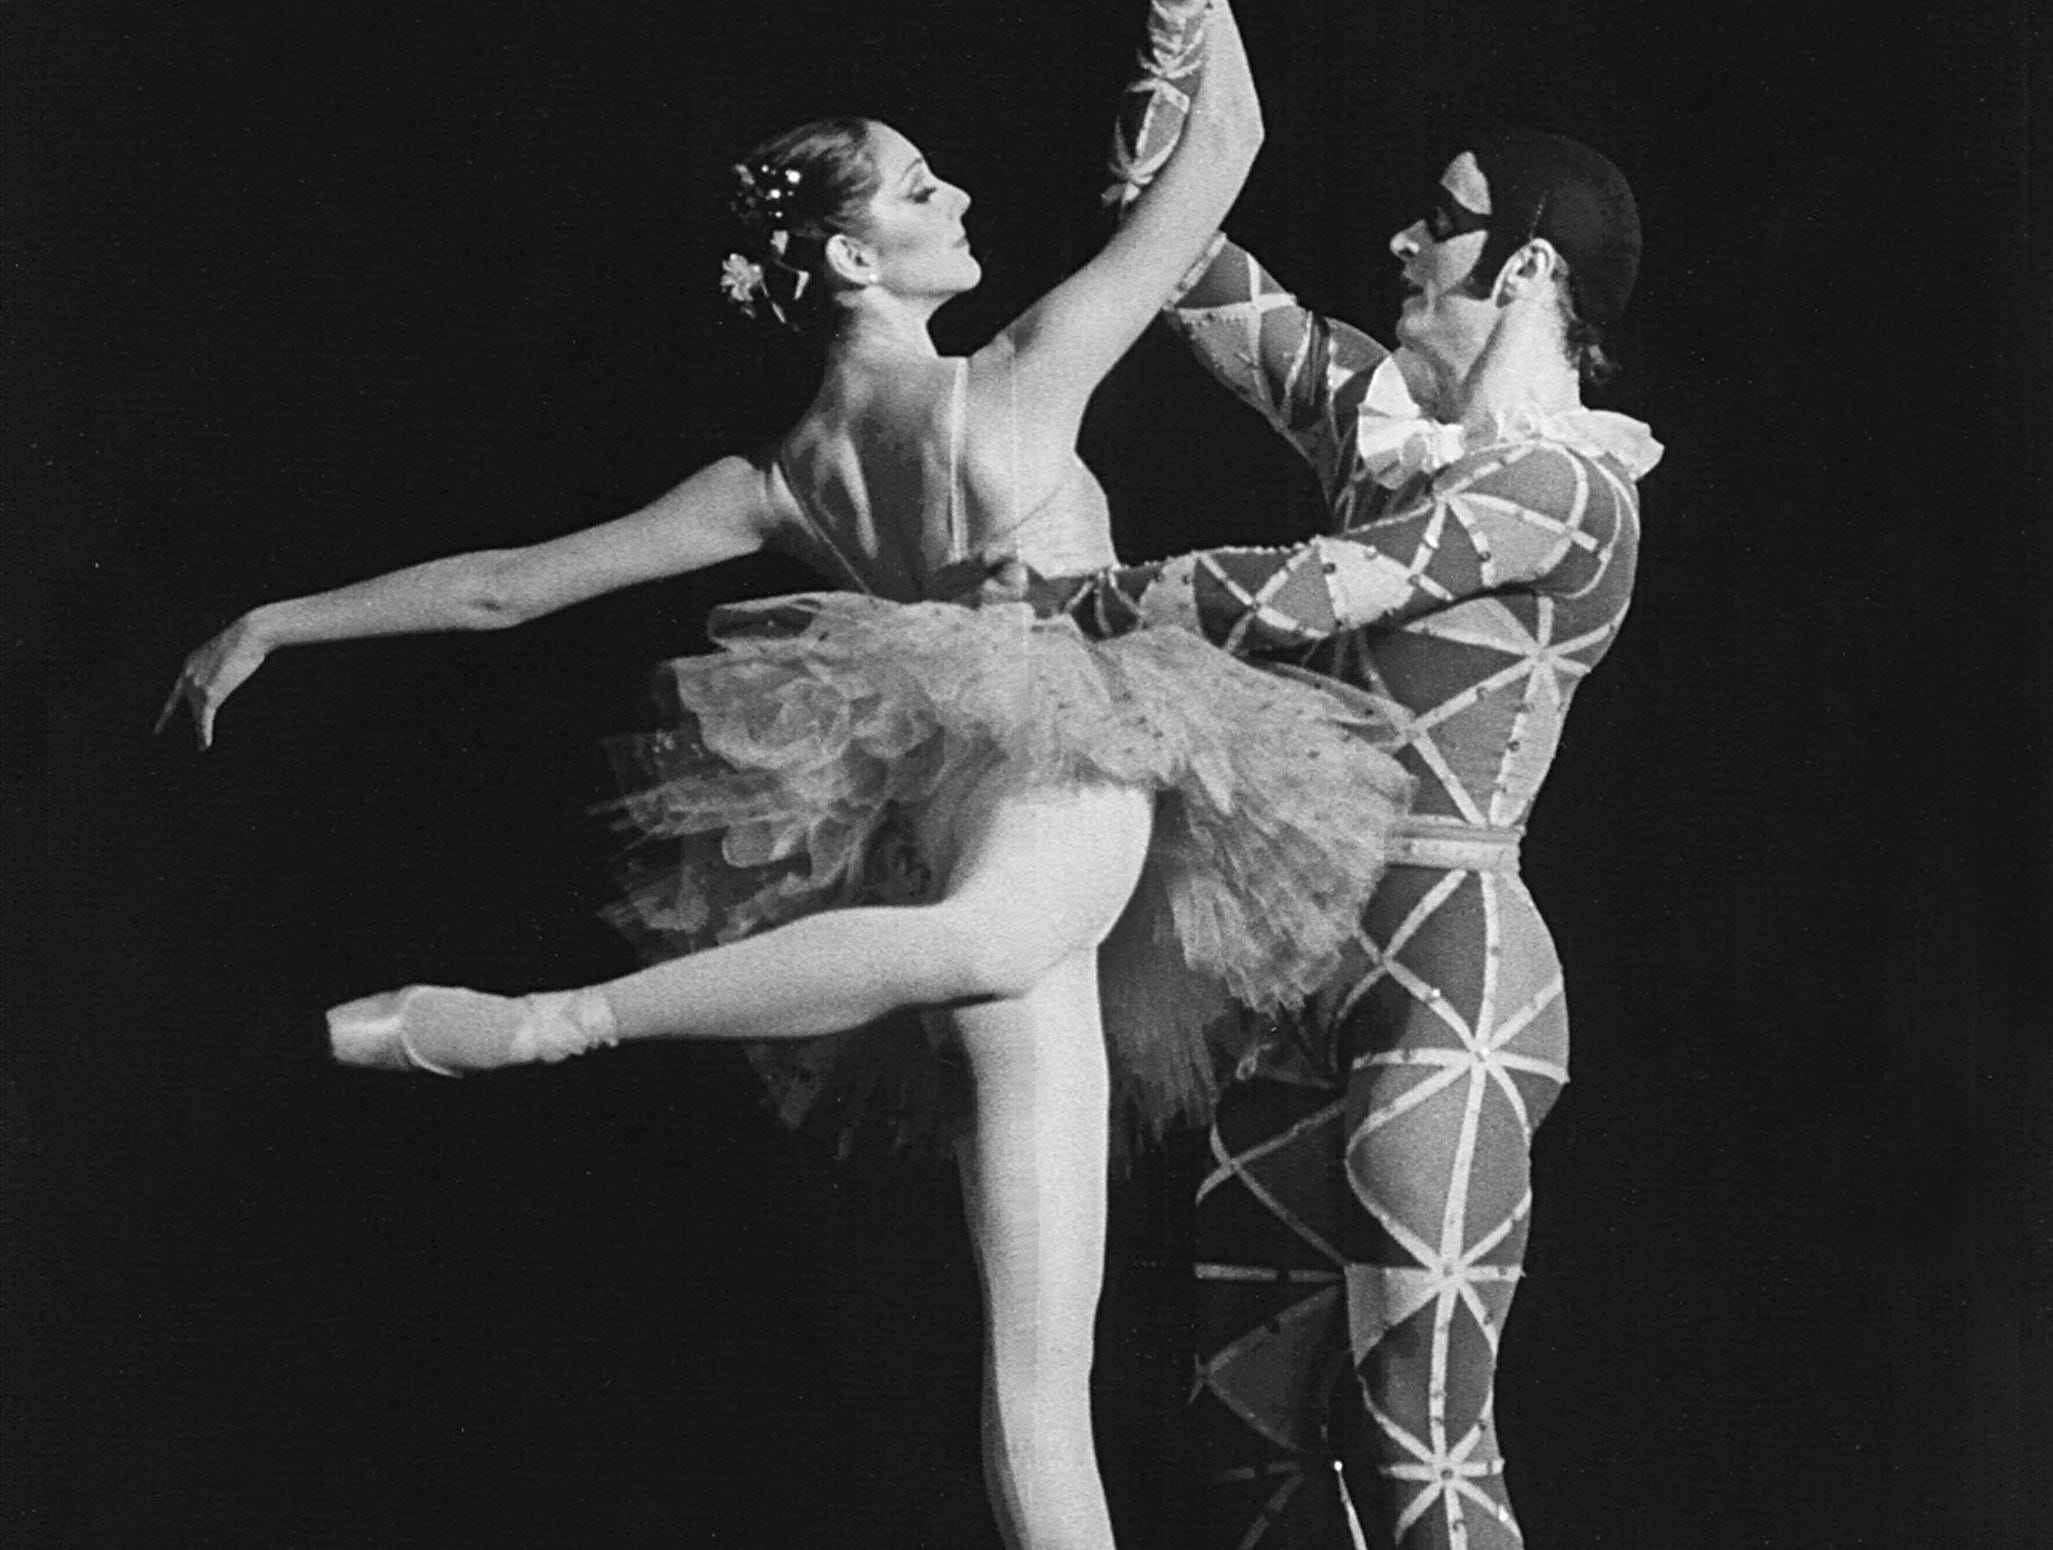 "Mikhail Baryshnikov and Cynthia Harvey in ""Harlequinade"" at The Auditorium Dixon-Myers Hall was only part of dance program the famed Russian presented on 16 Jun 1981 with his American Ballet Theatre group. Baryshnikov performed in this and one other pas de deux in the repertory program of a dozen works excerpted from larger-scale ballets. The 4,361 seat hall was sold out by late afternoon."